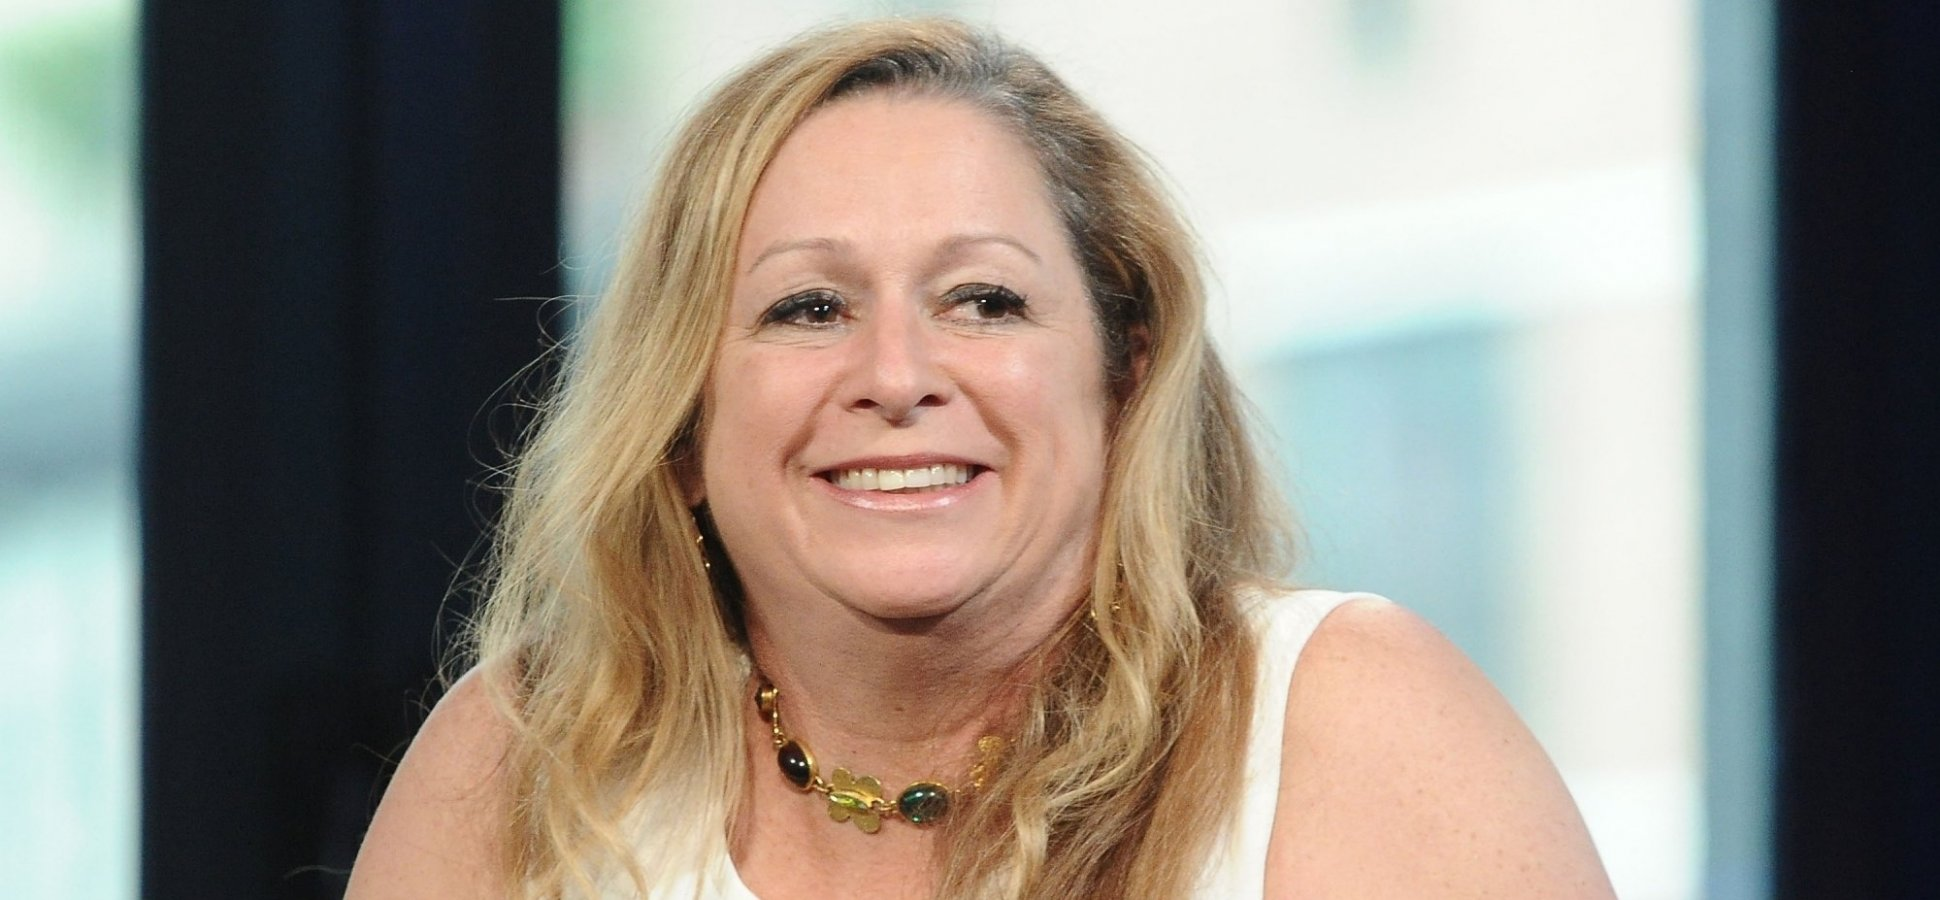 Heiress Abigail Disney Just Revealed What It's Really Like to Be Fabulously Rich (It Will Shock You)